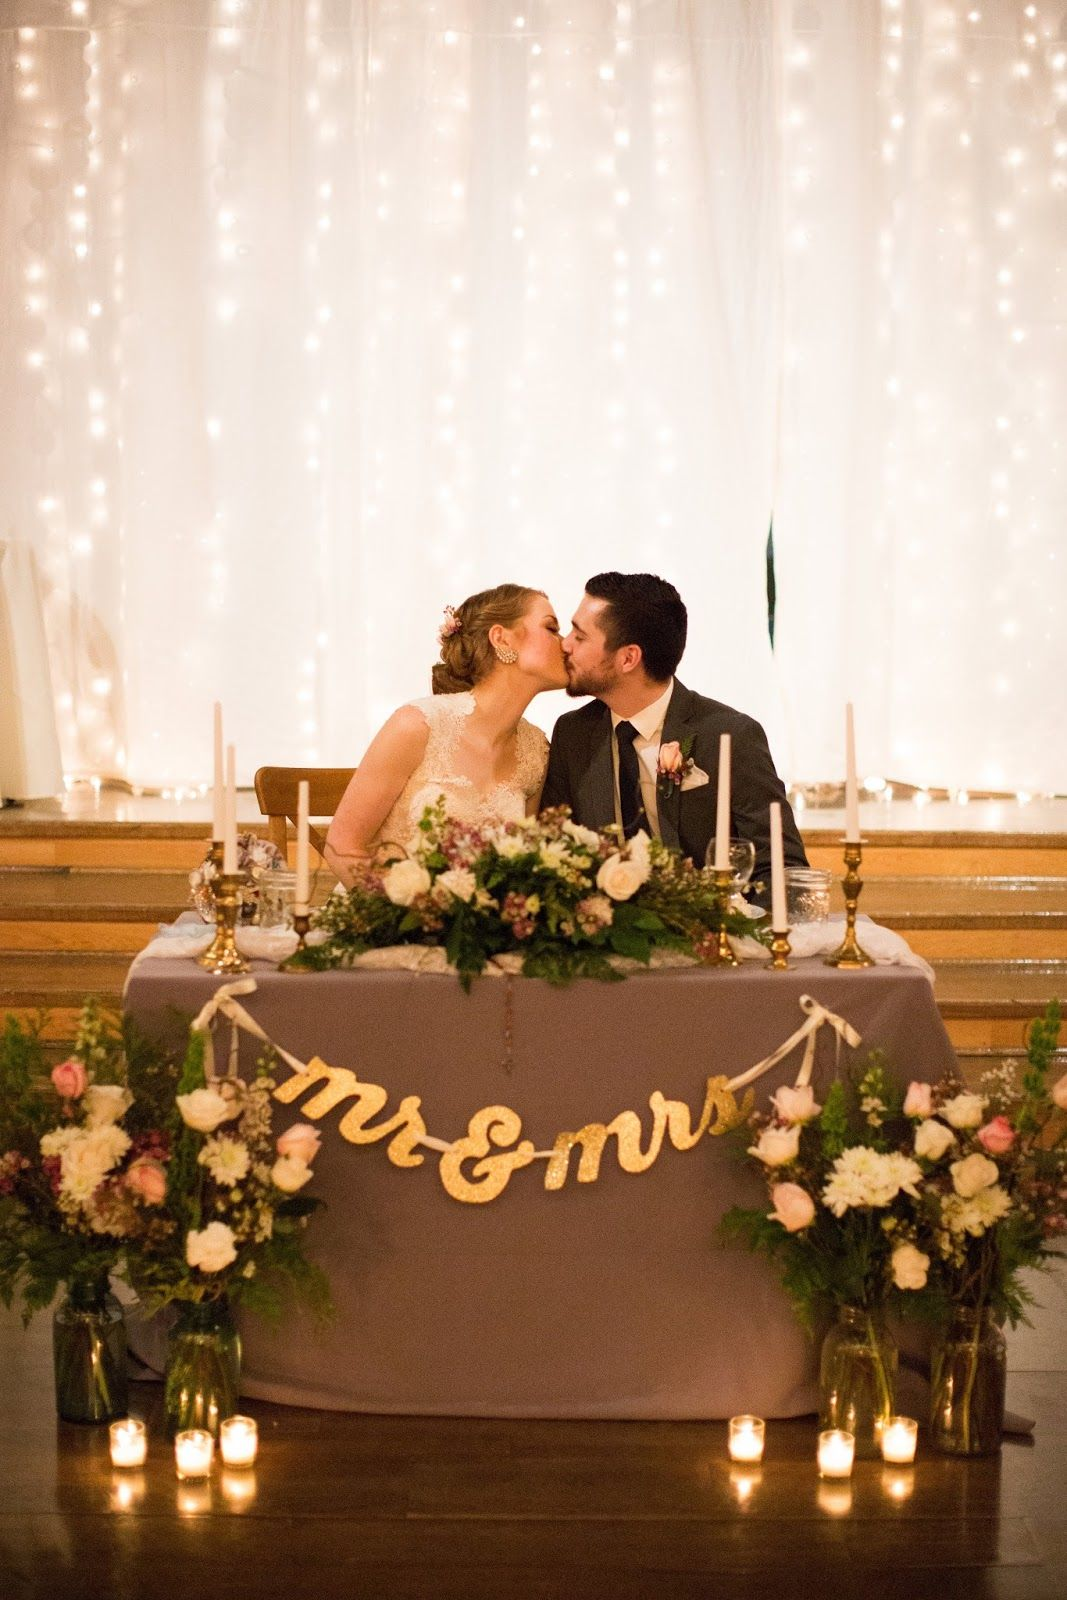 Merveilleux Stunning And Elegant January Winter Barn Wedding Close To Salem, Oregon. Mr  U0026 Mrs Sweetheart Table With Twinkle Light Backdrop And Bride And Groom Kiss